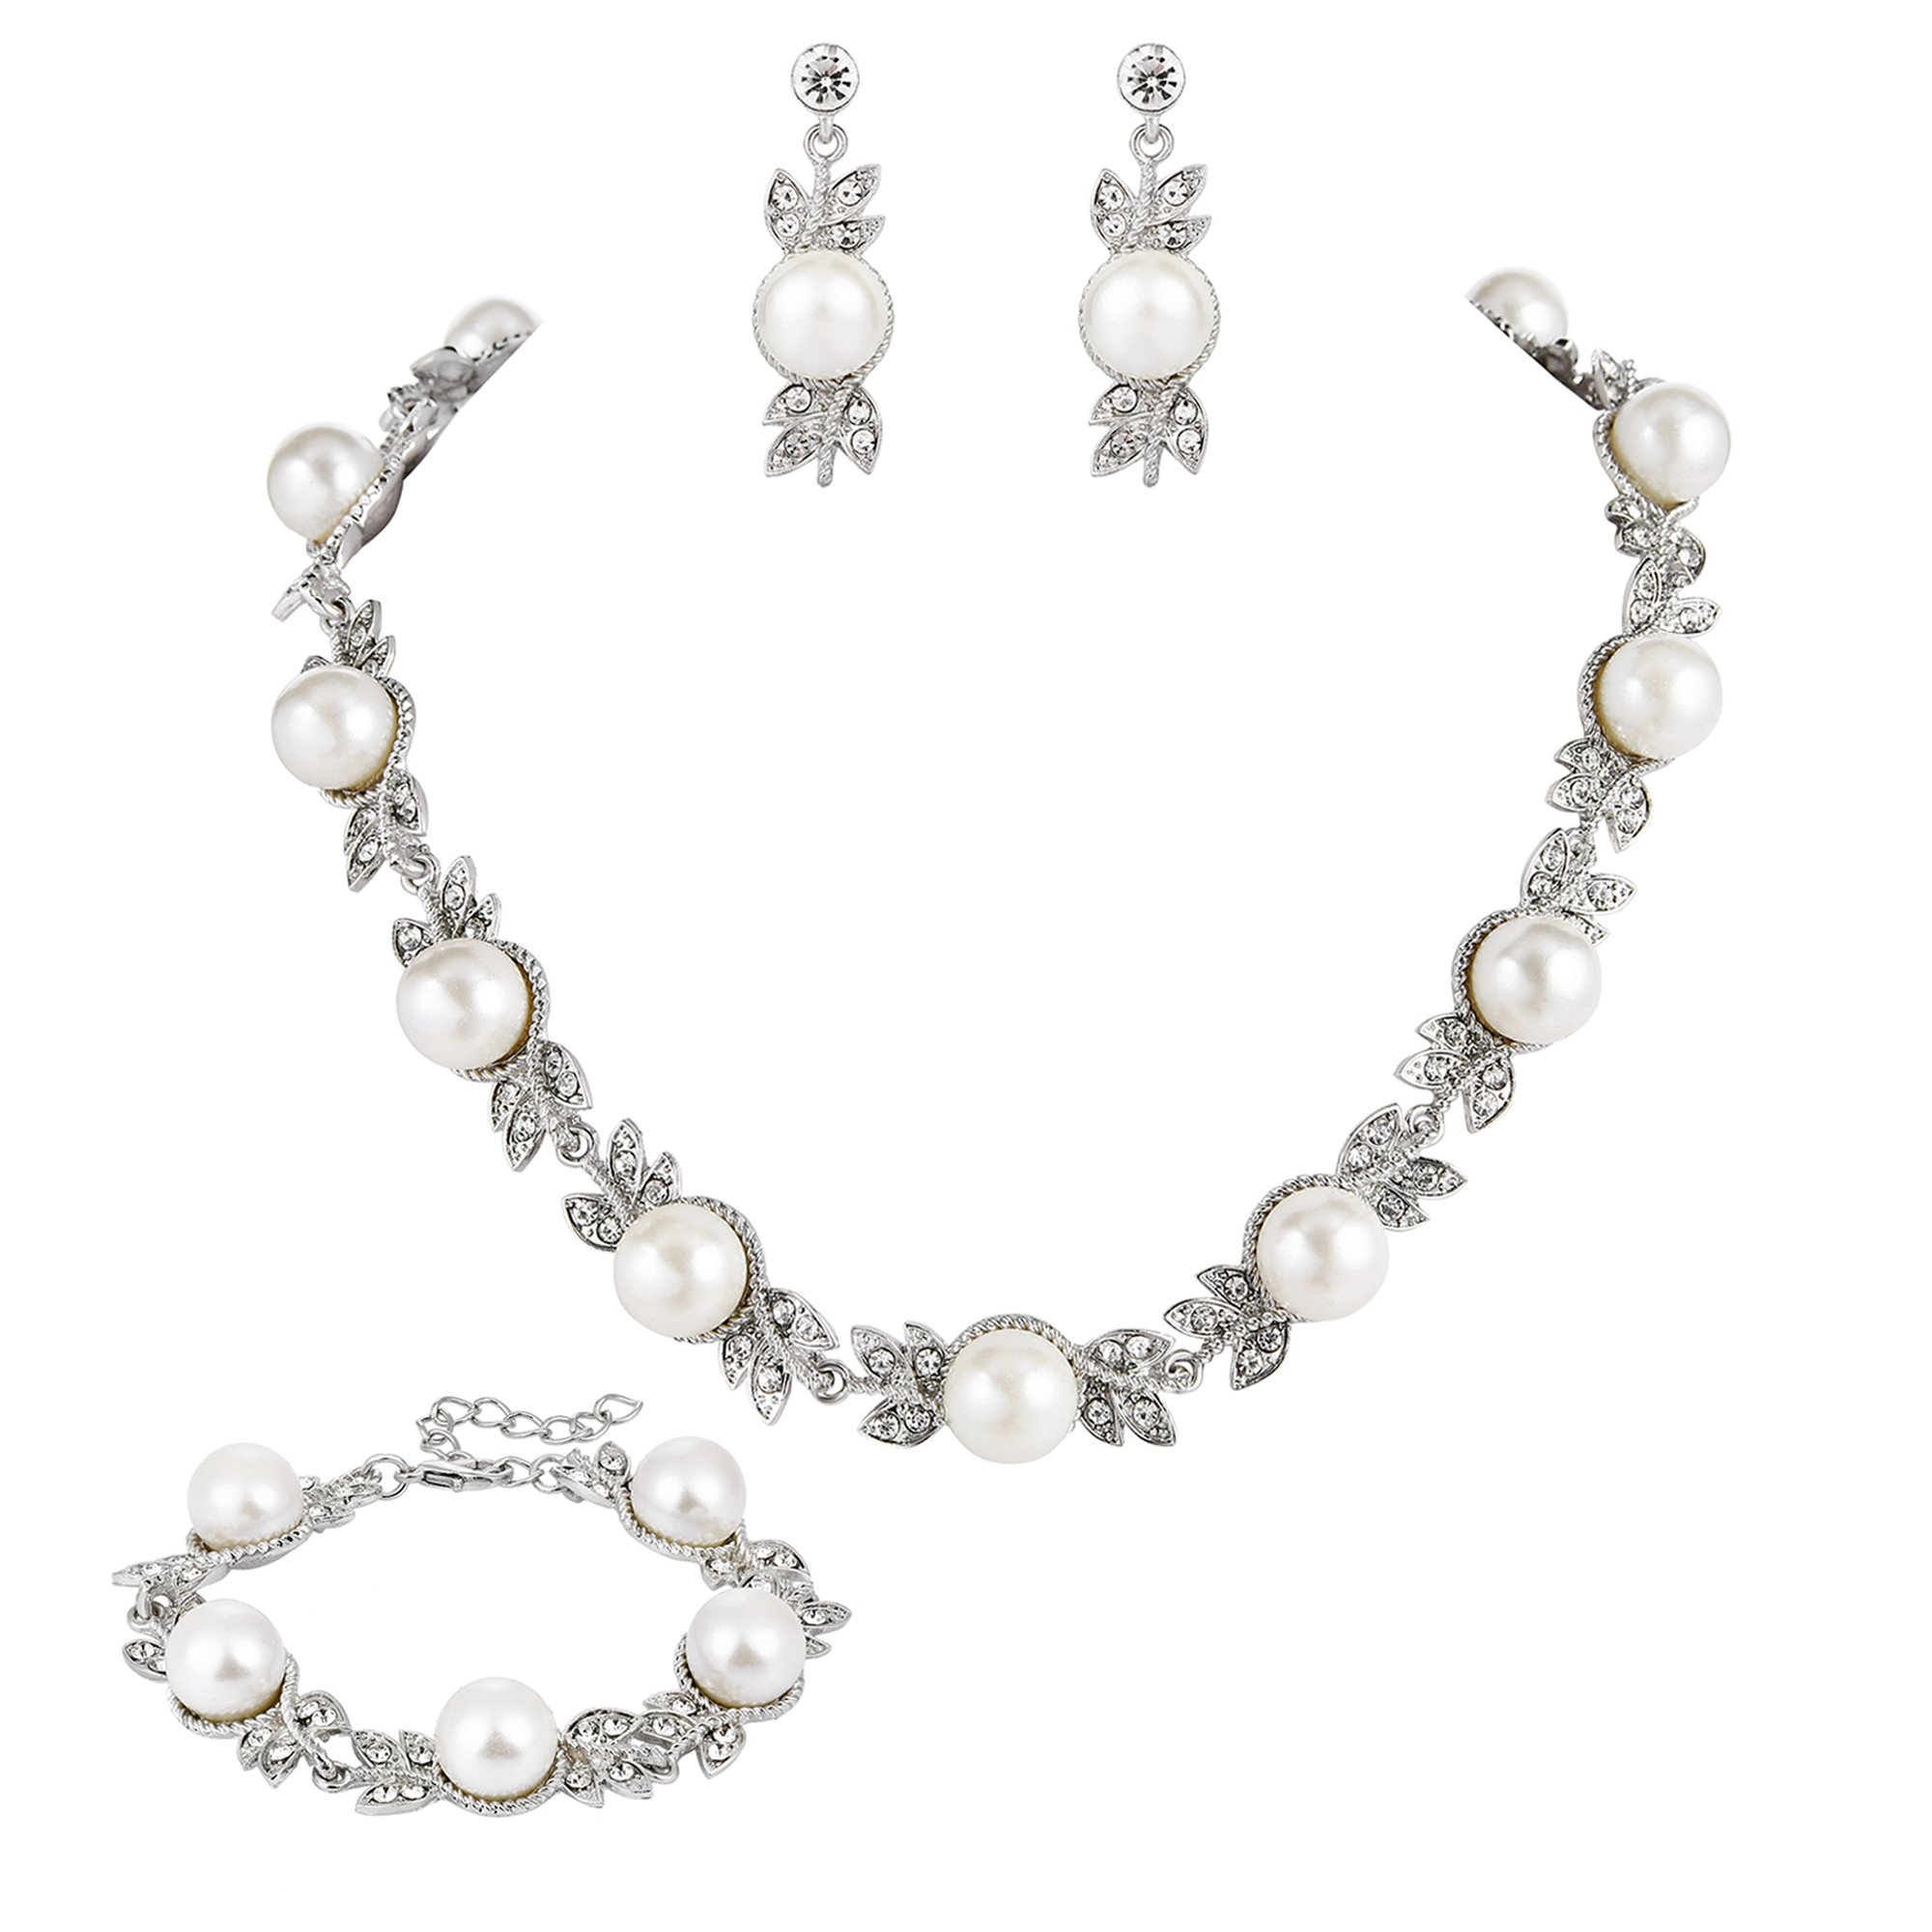 BriLove Wedding Bridal Simulated Pearl Necklace Earrings Jewelry Set for Women Crystal Cream Floral Leaf Collar Necklace Dangle Earrings Tennis Bracelet Set Clear Silver-Tone